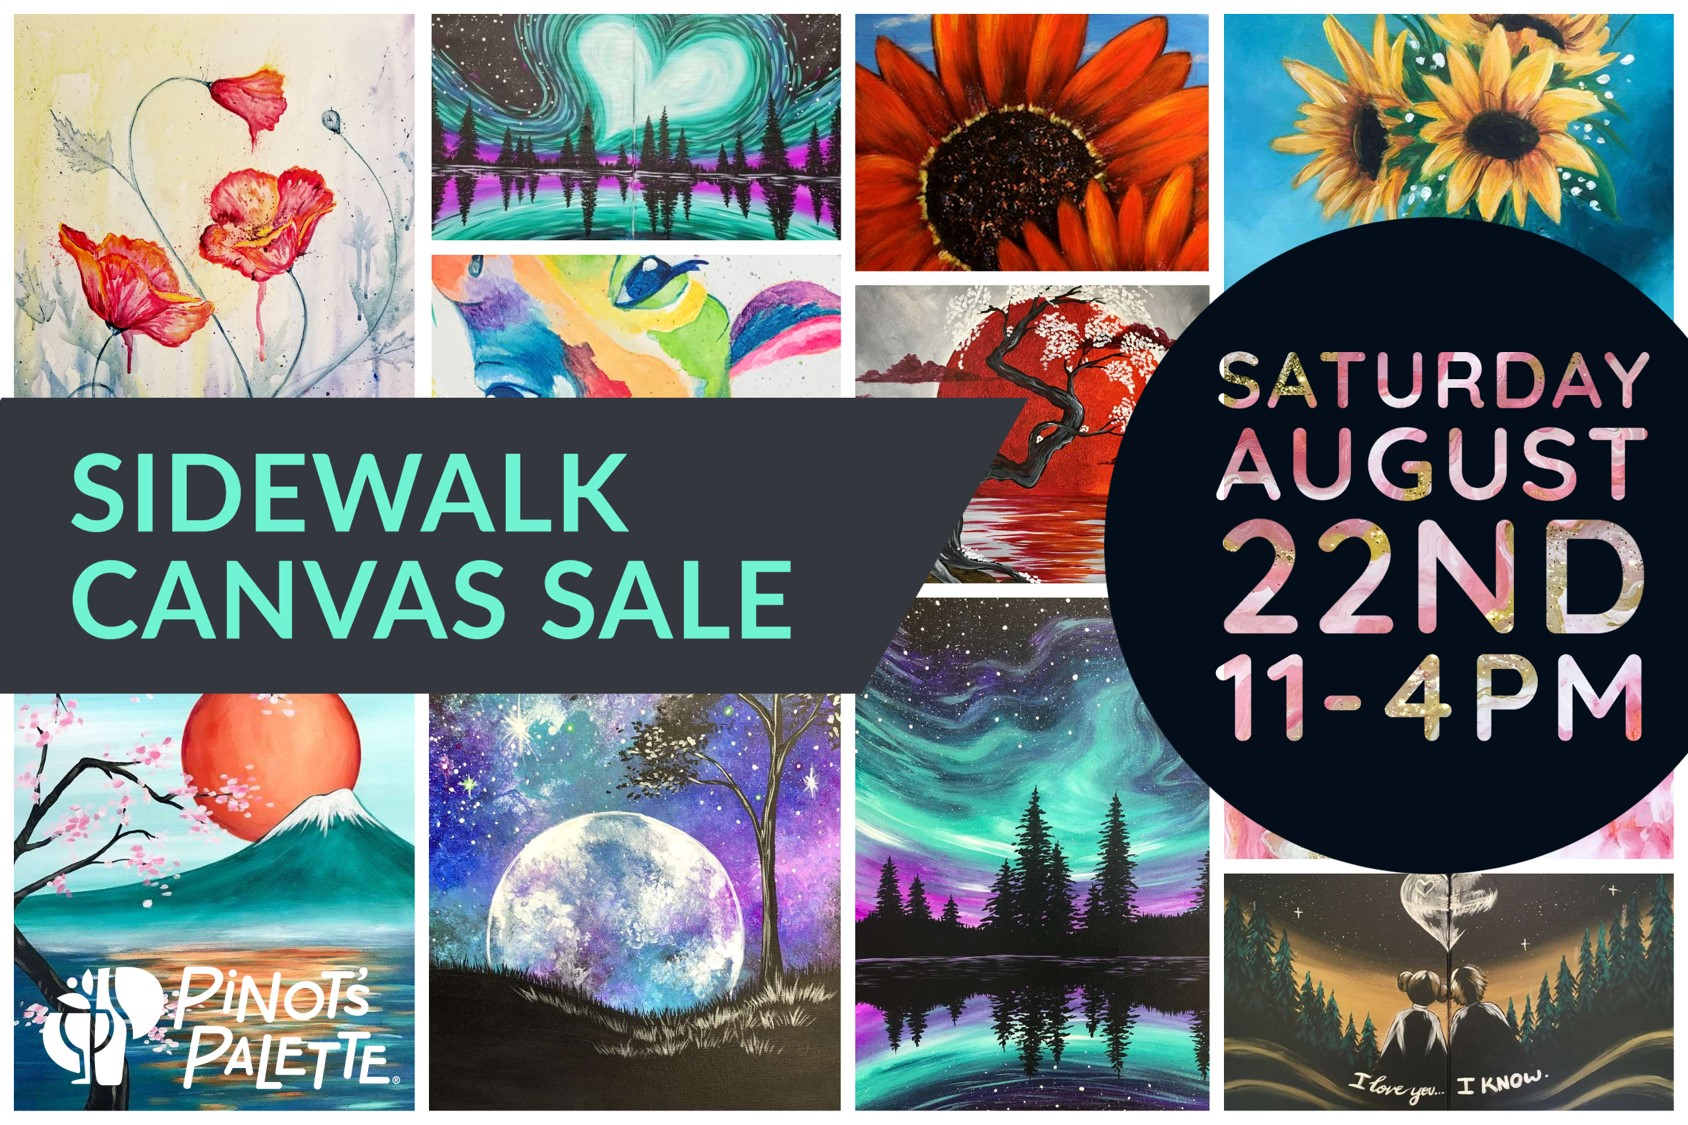 Sidewalk Canvas Sale